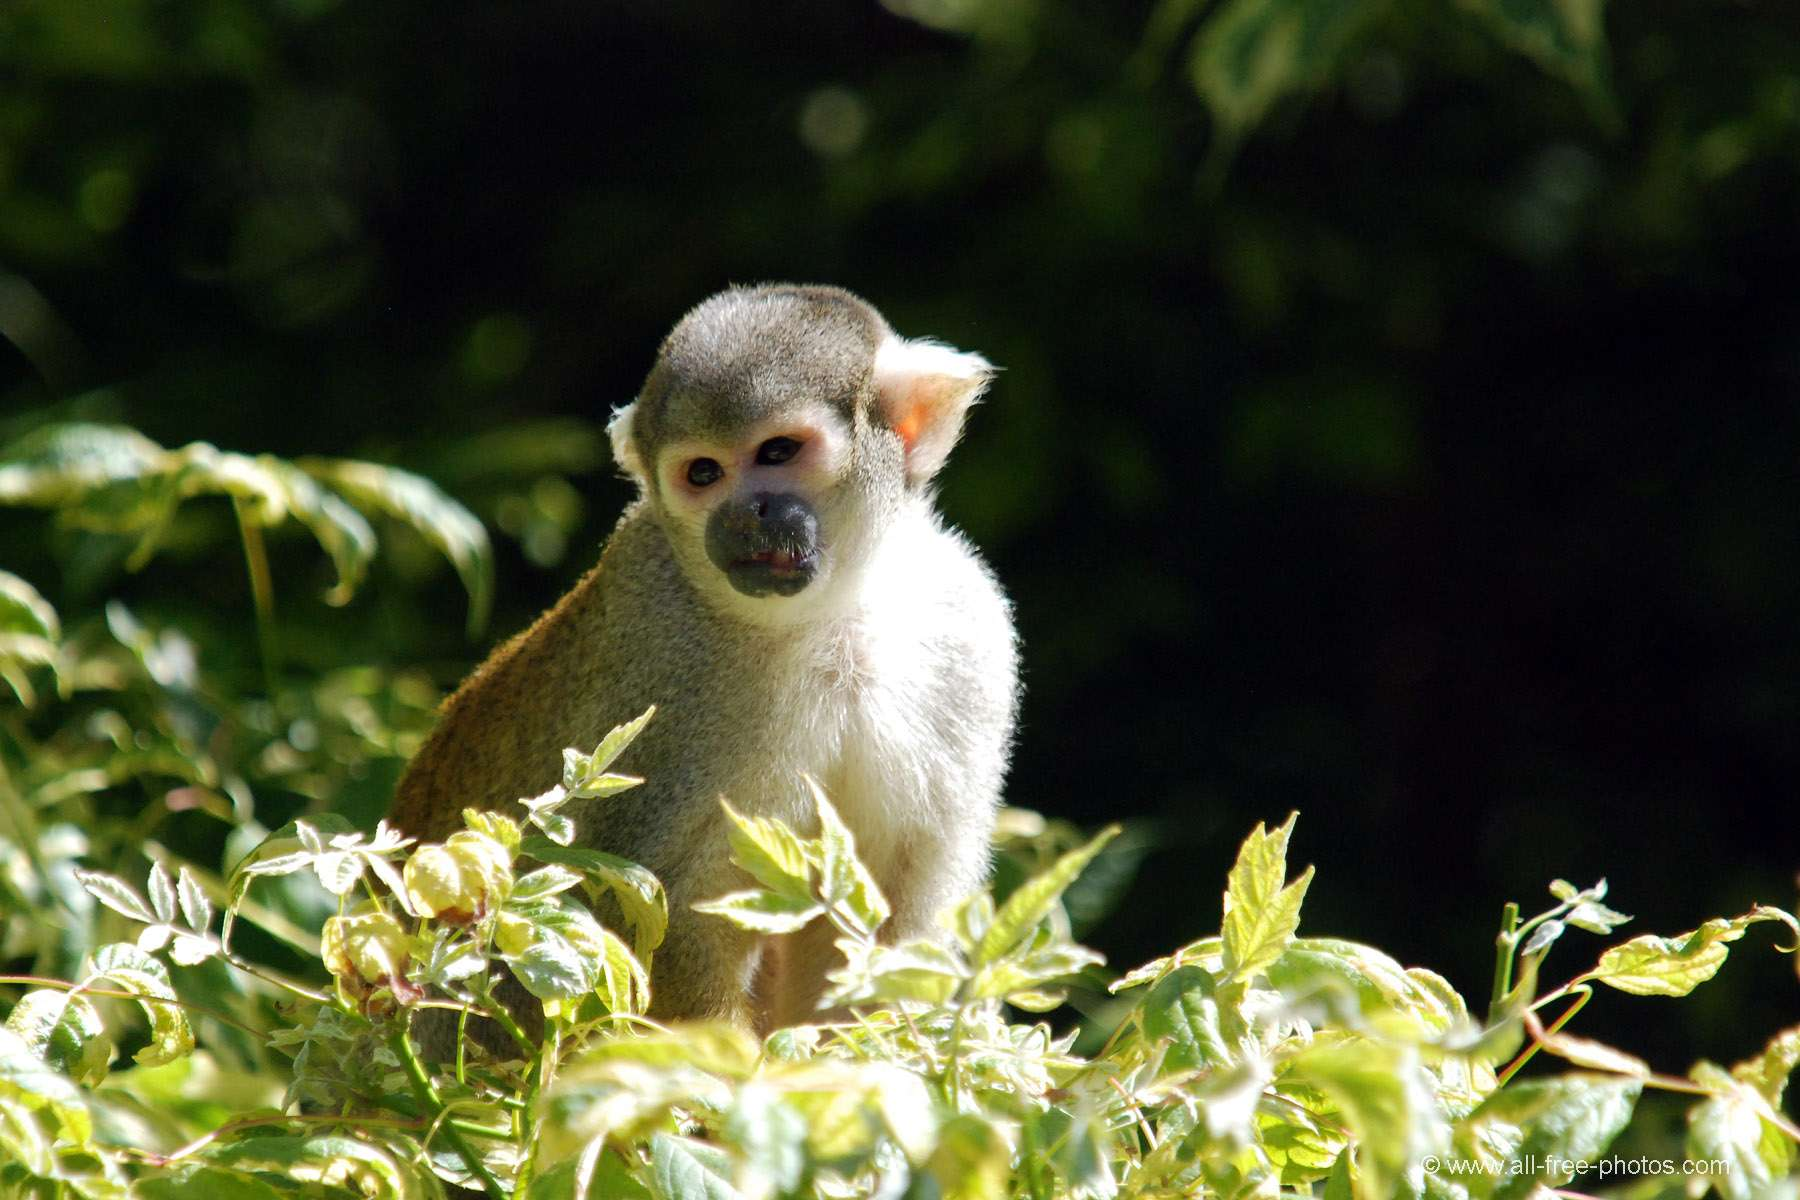 Saimari or Squirrel monkey